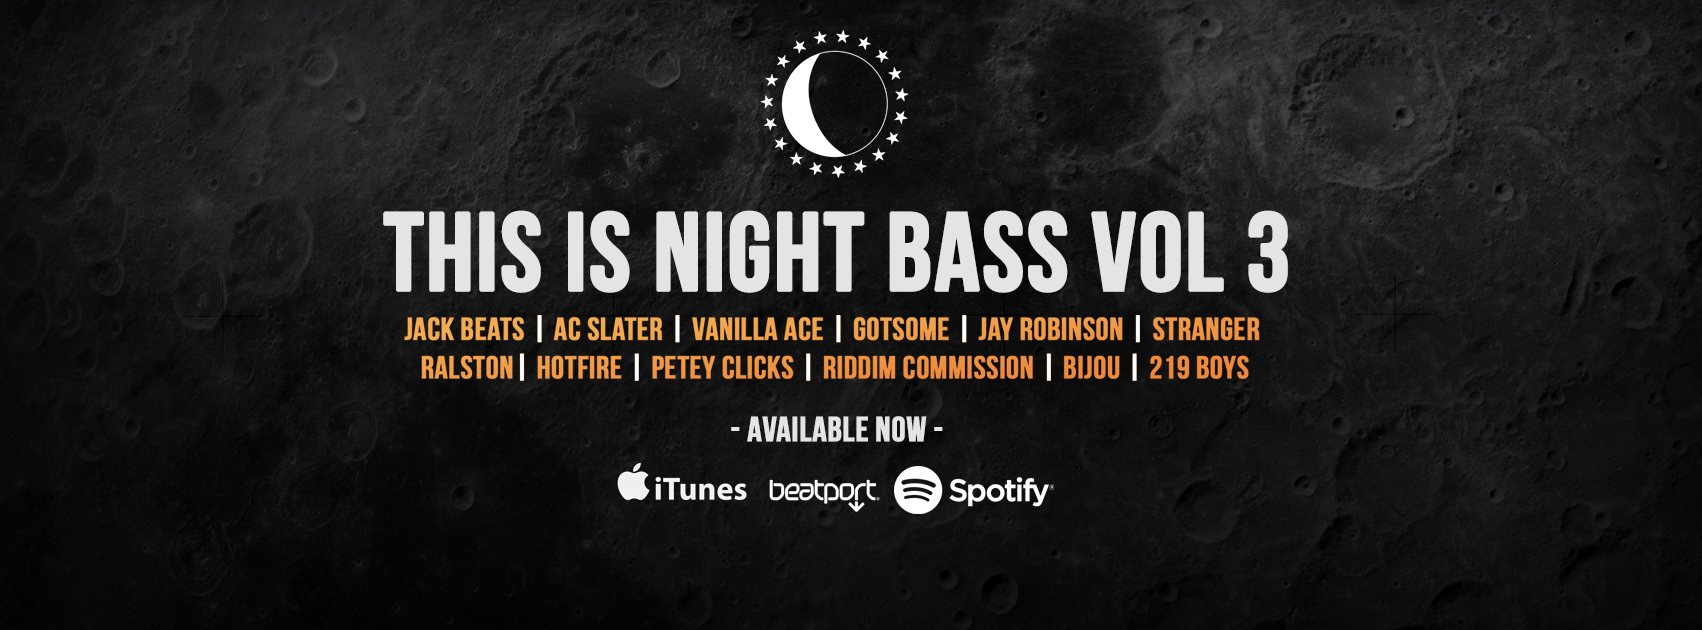 """[HOUSE] Night Bass Releases Third Installment of """"This is Night Bass"""" Compilation"""